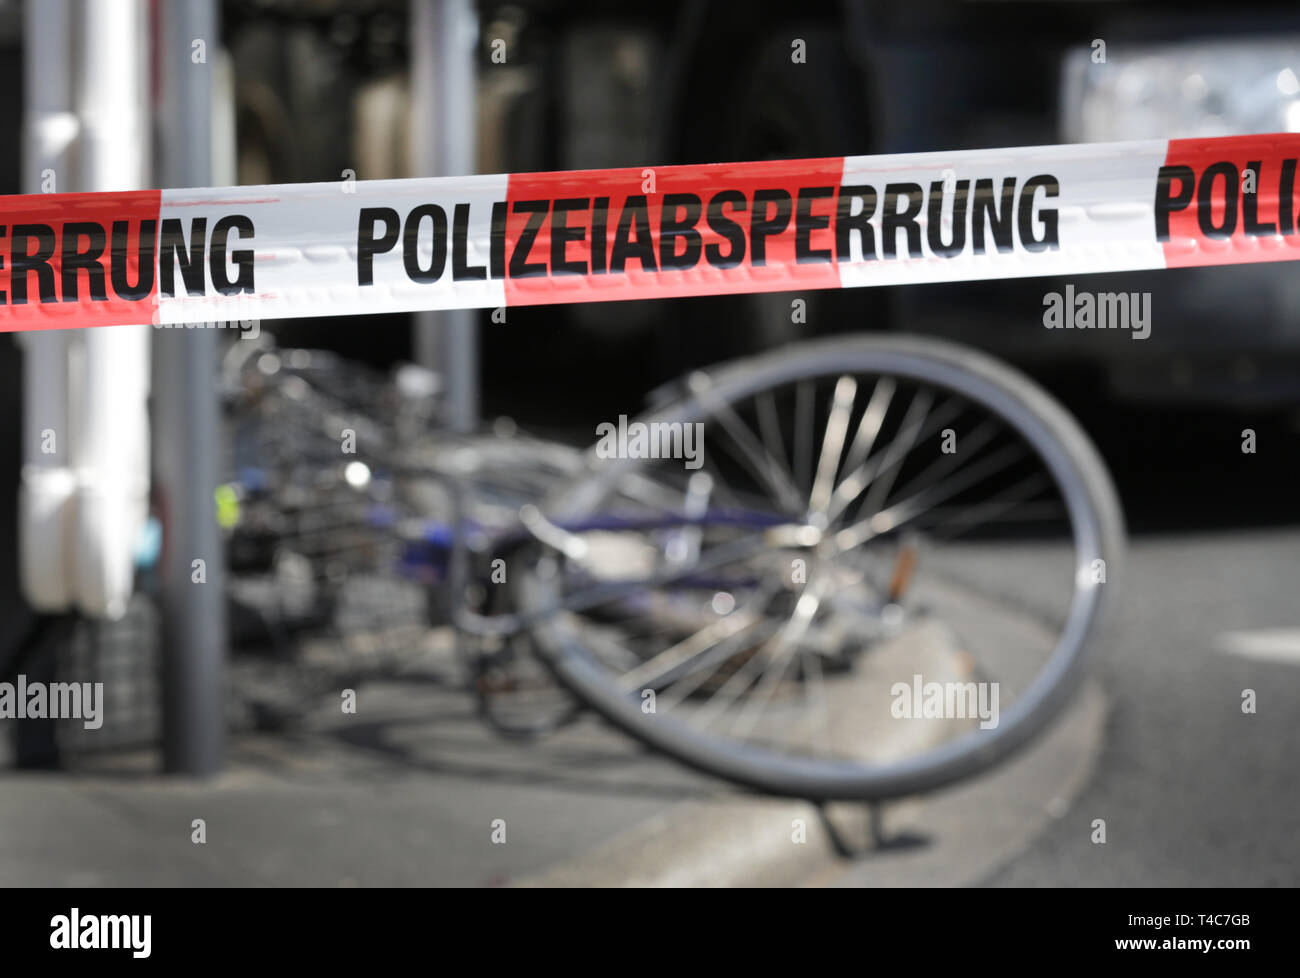 """16 April 2019, North Rhine-Westphalia, Düsseldorf: Behind a barrier tape with the inscription """"Police barrier"""" there is a bicycle in front of a truck at the scene of the accident. There has been an accident with a truck (in the back) and a cyclist in downtown Düsseldorf. More precise circumstances regarding the cause of the accident are not yet known. Photo: Martin Gerten/dpa Stock Photo"""